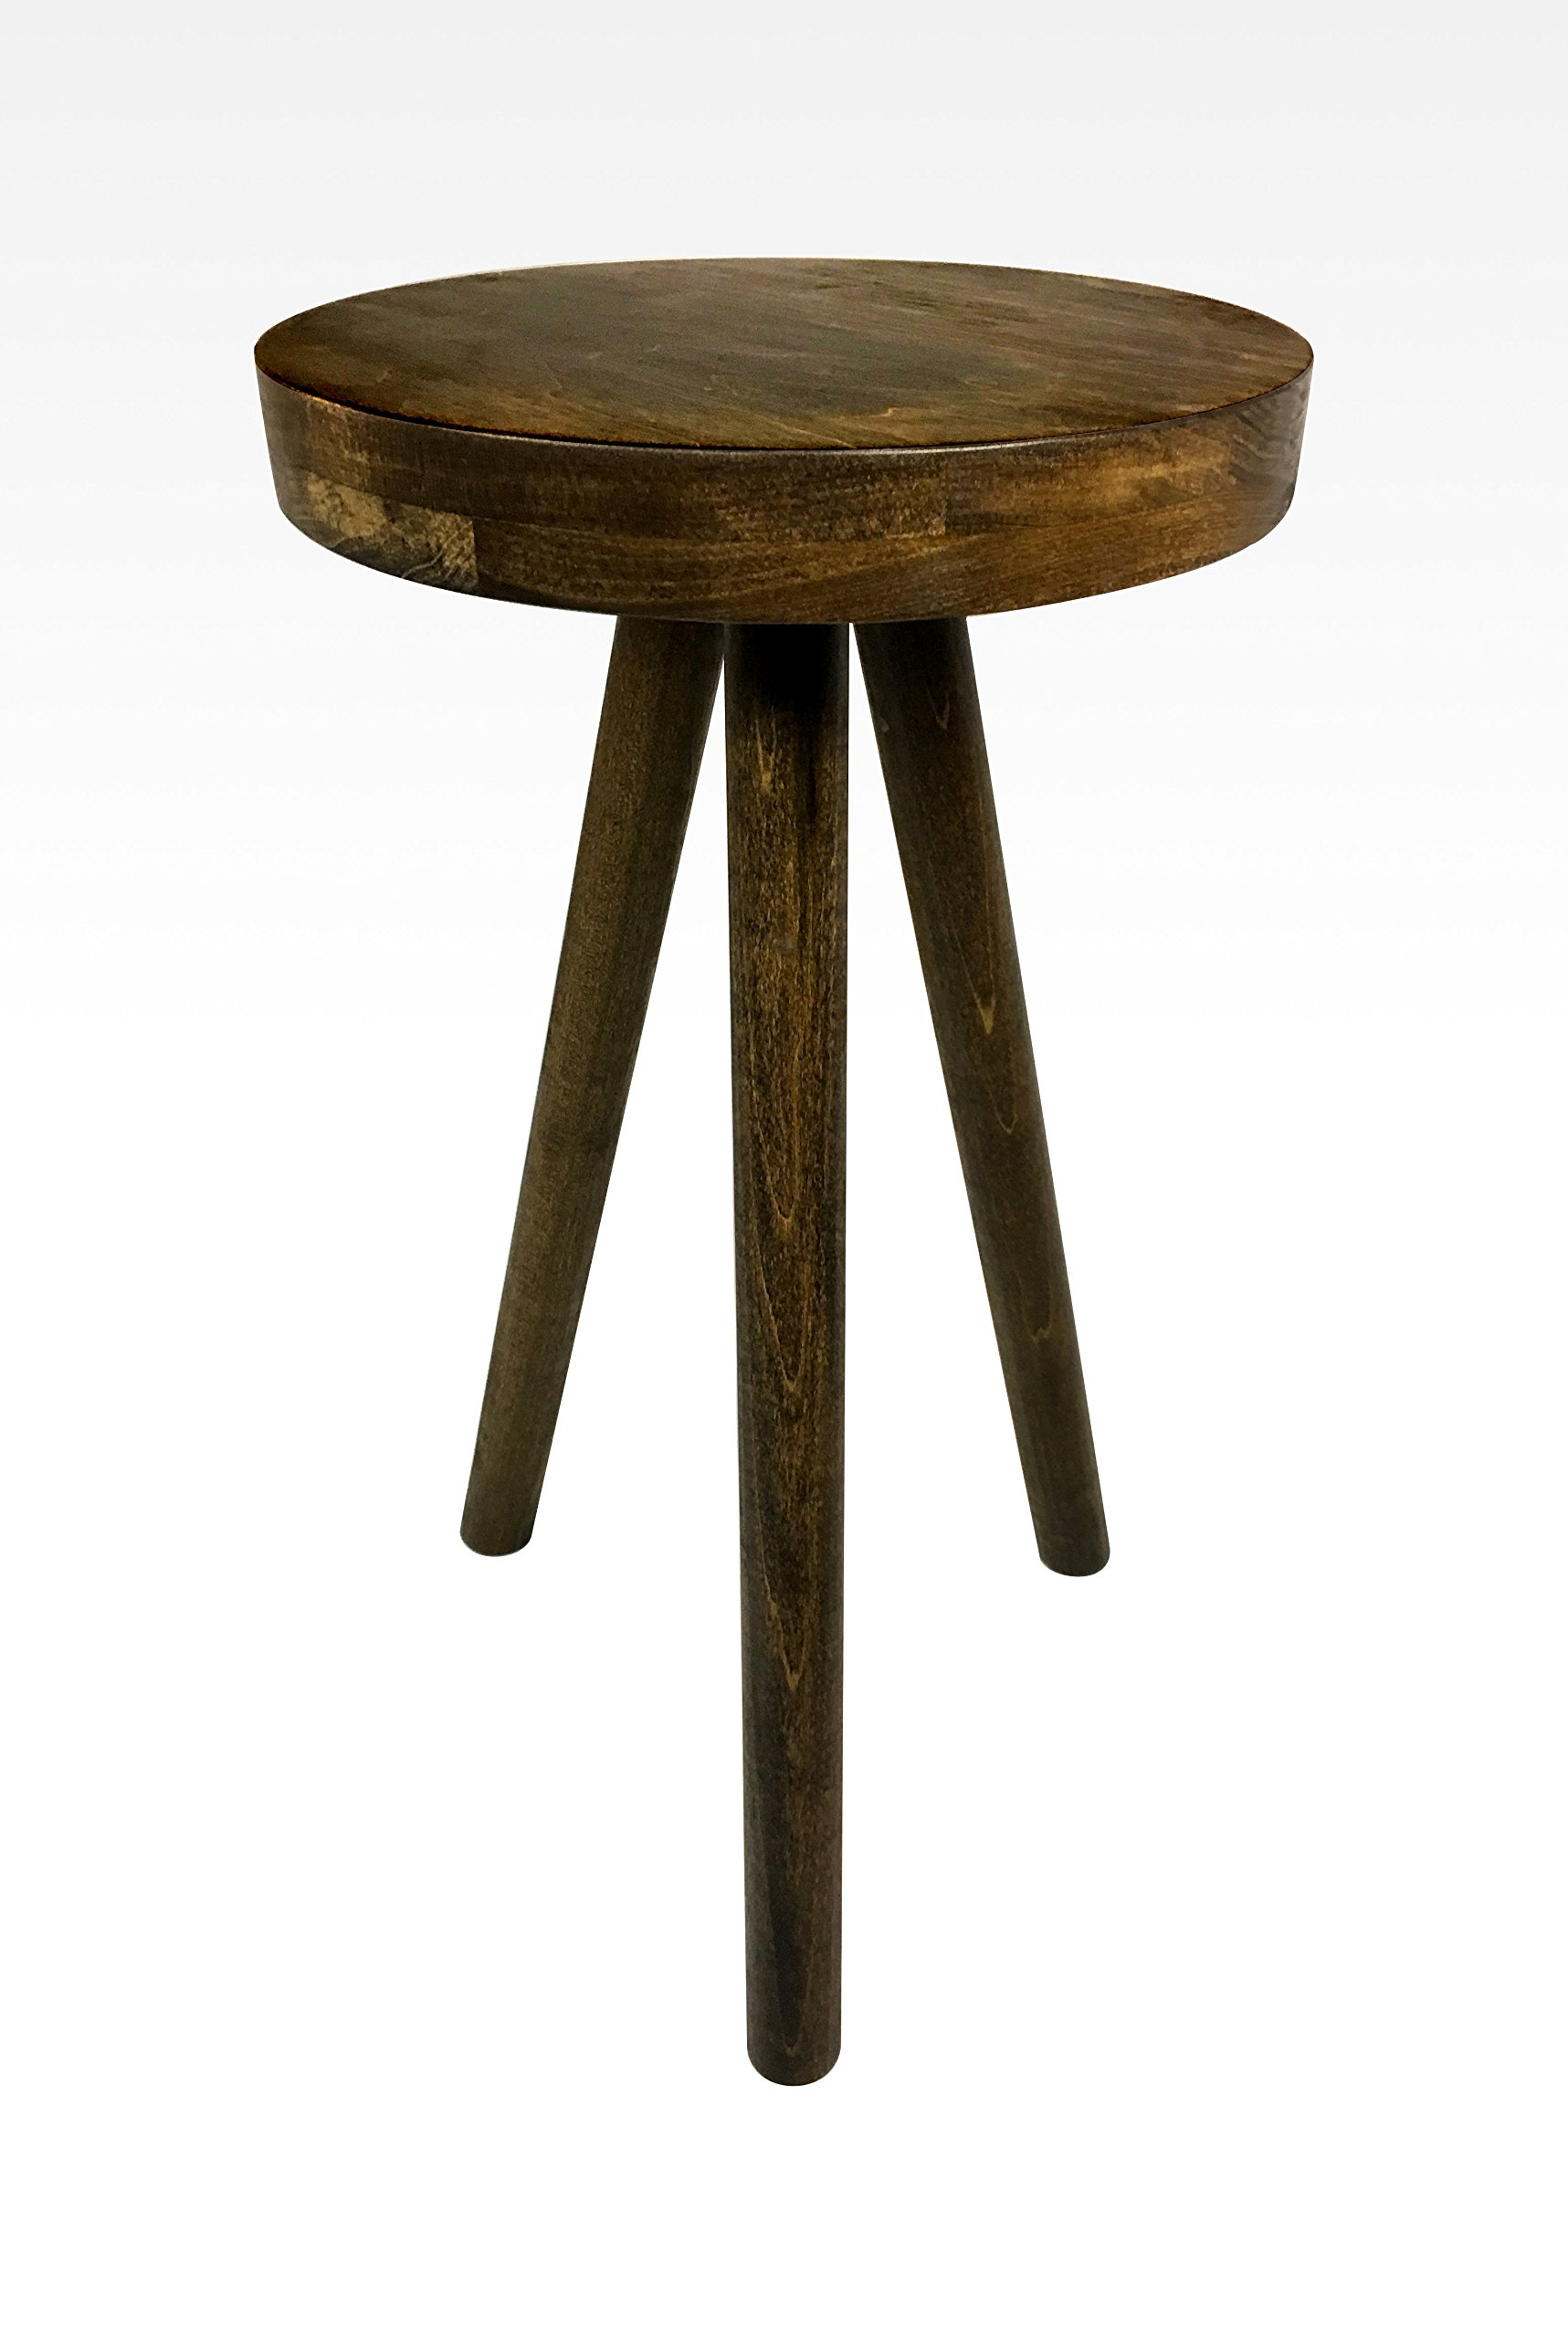 Modern Side Table in Walnut by Candlewood Furniture End Table Bar Stool, Bedside Table, Nightstand, Wood, Wooden, Three Legged Table